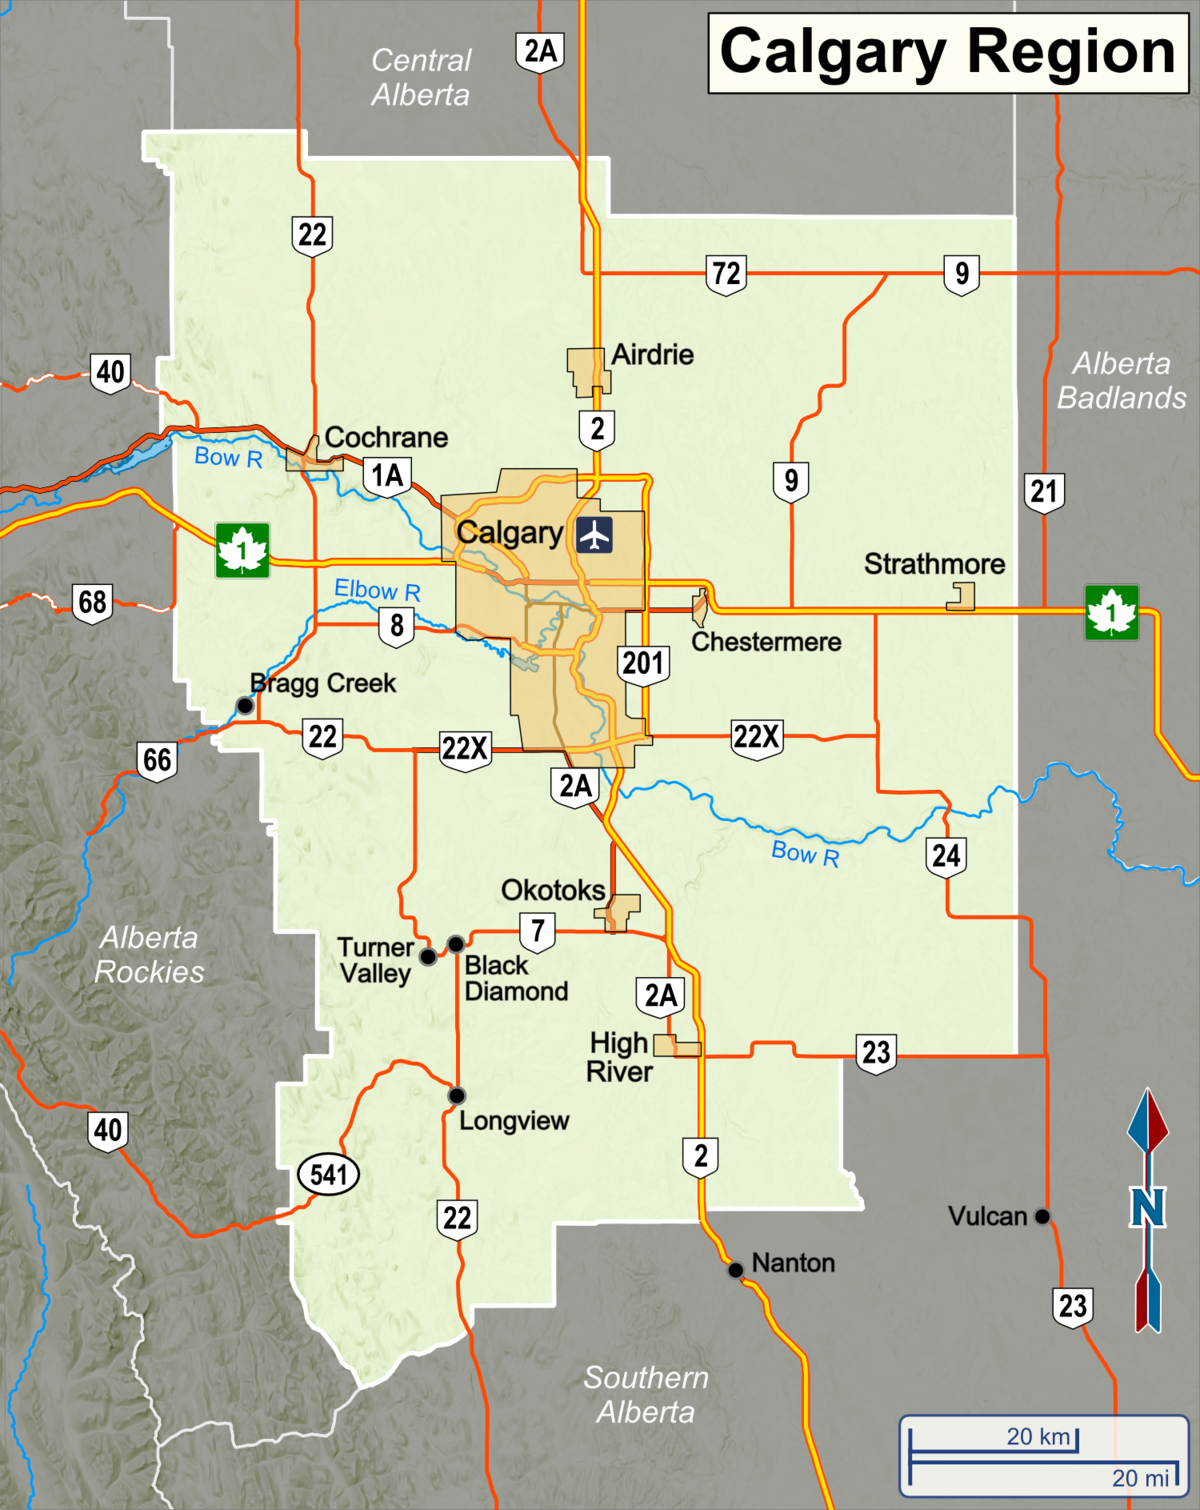 Calgary Region Travel Guide At Wikivoyage